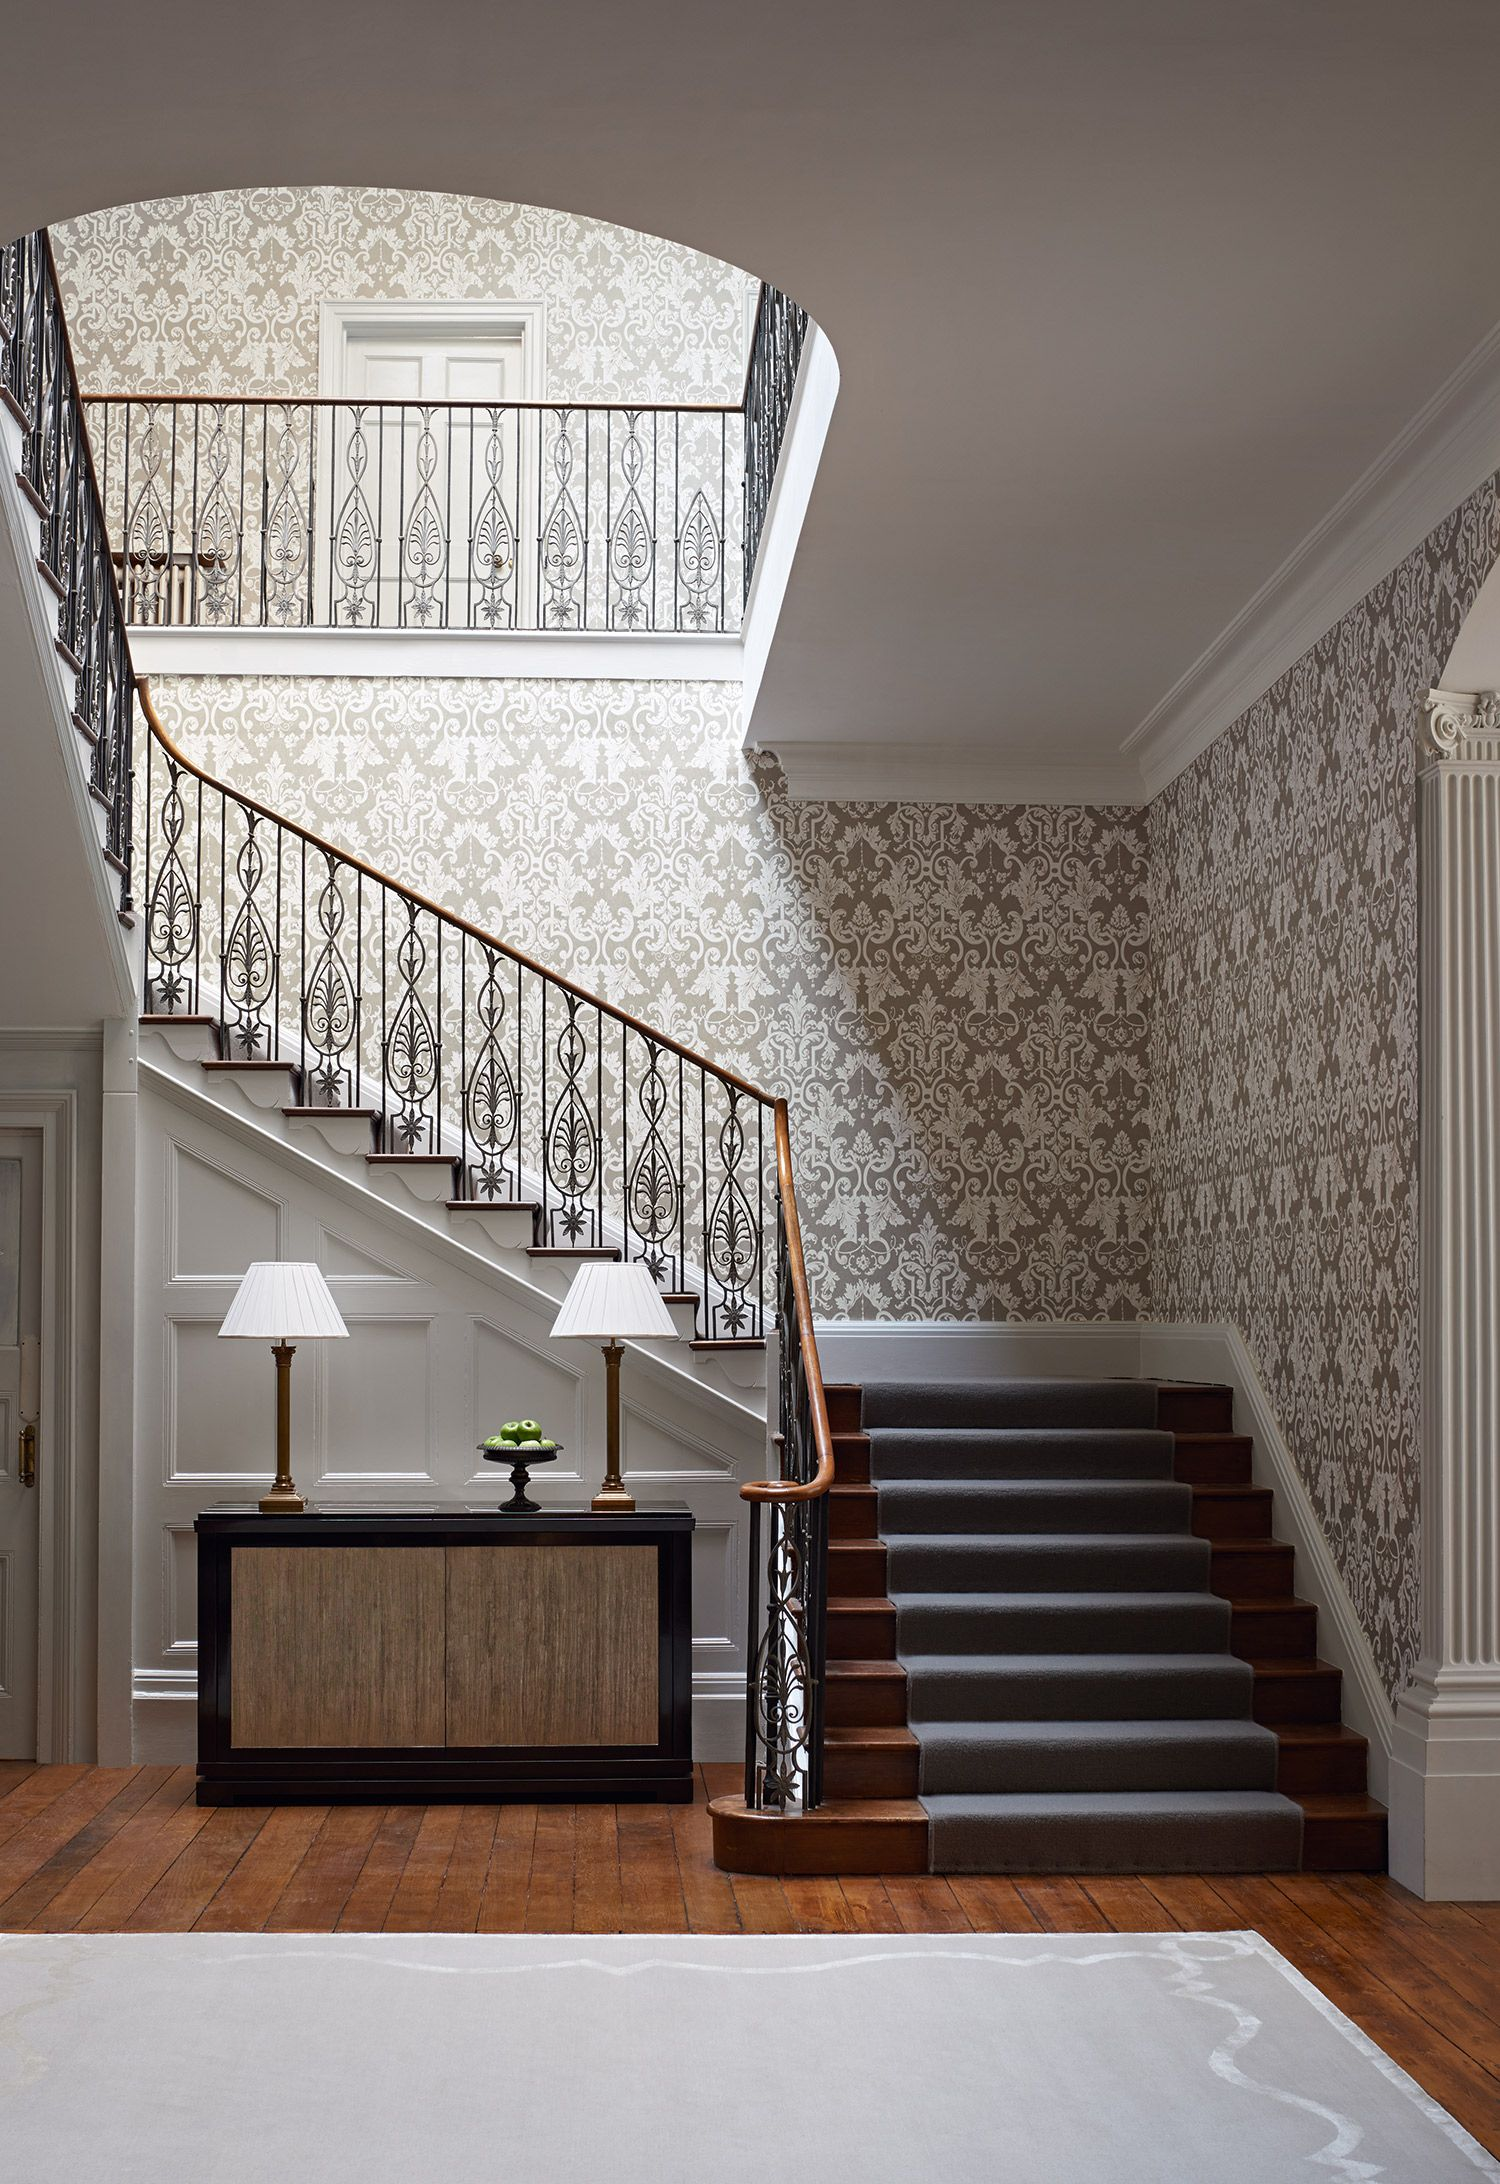 Hall Stairs And Landing Wallpaper Inspiration For Your Hallway